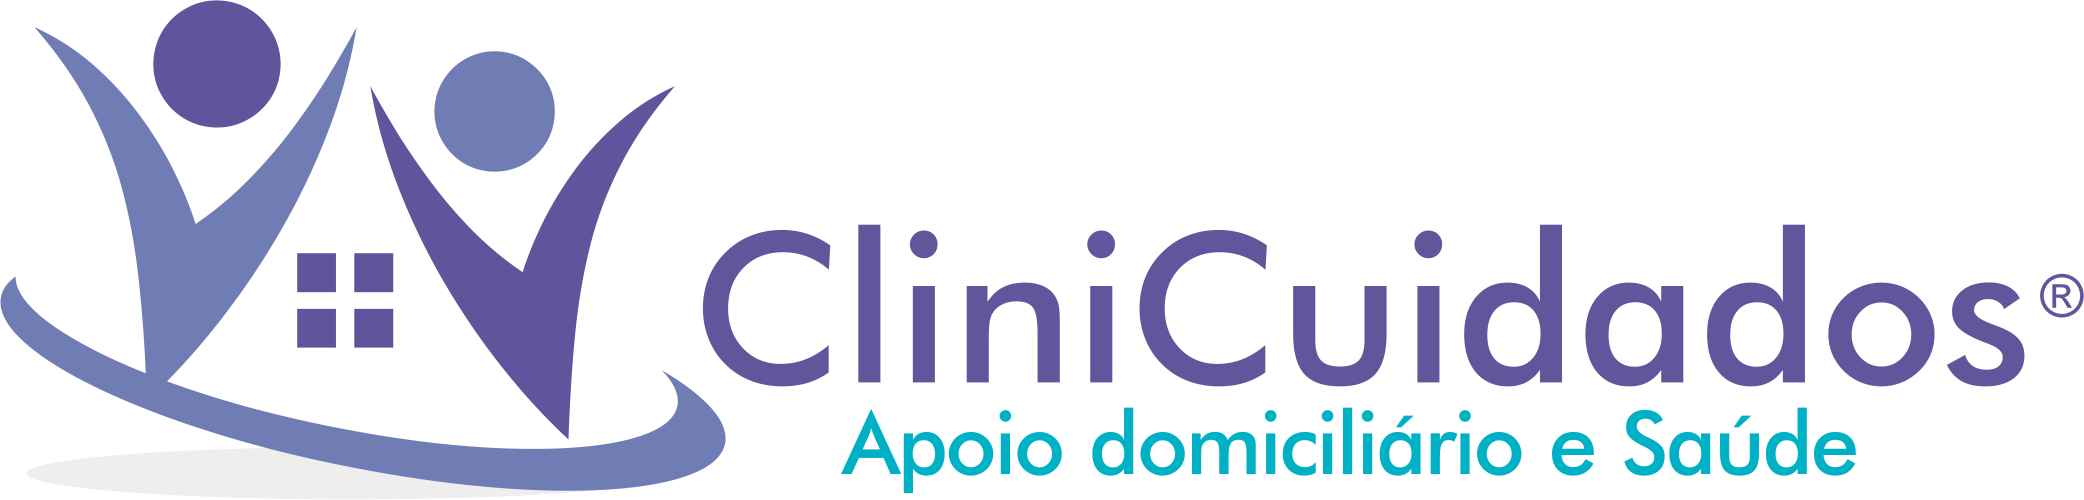 Logotipo Clinicuidados original